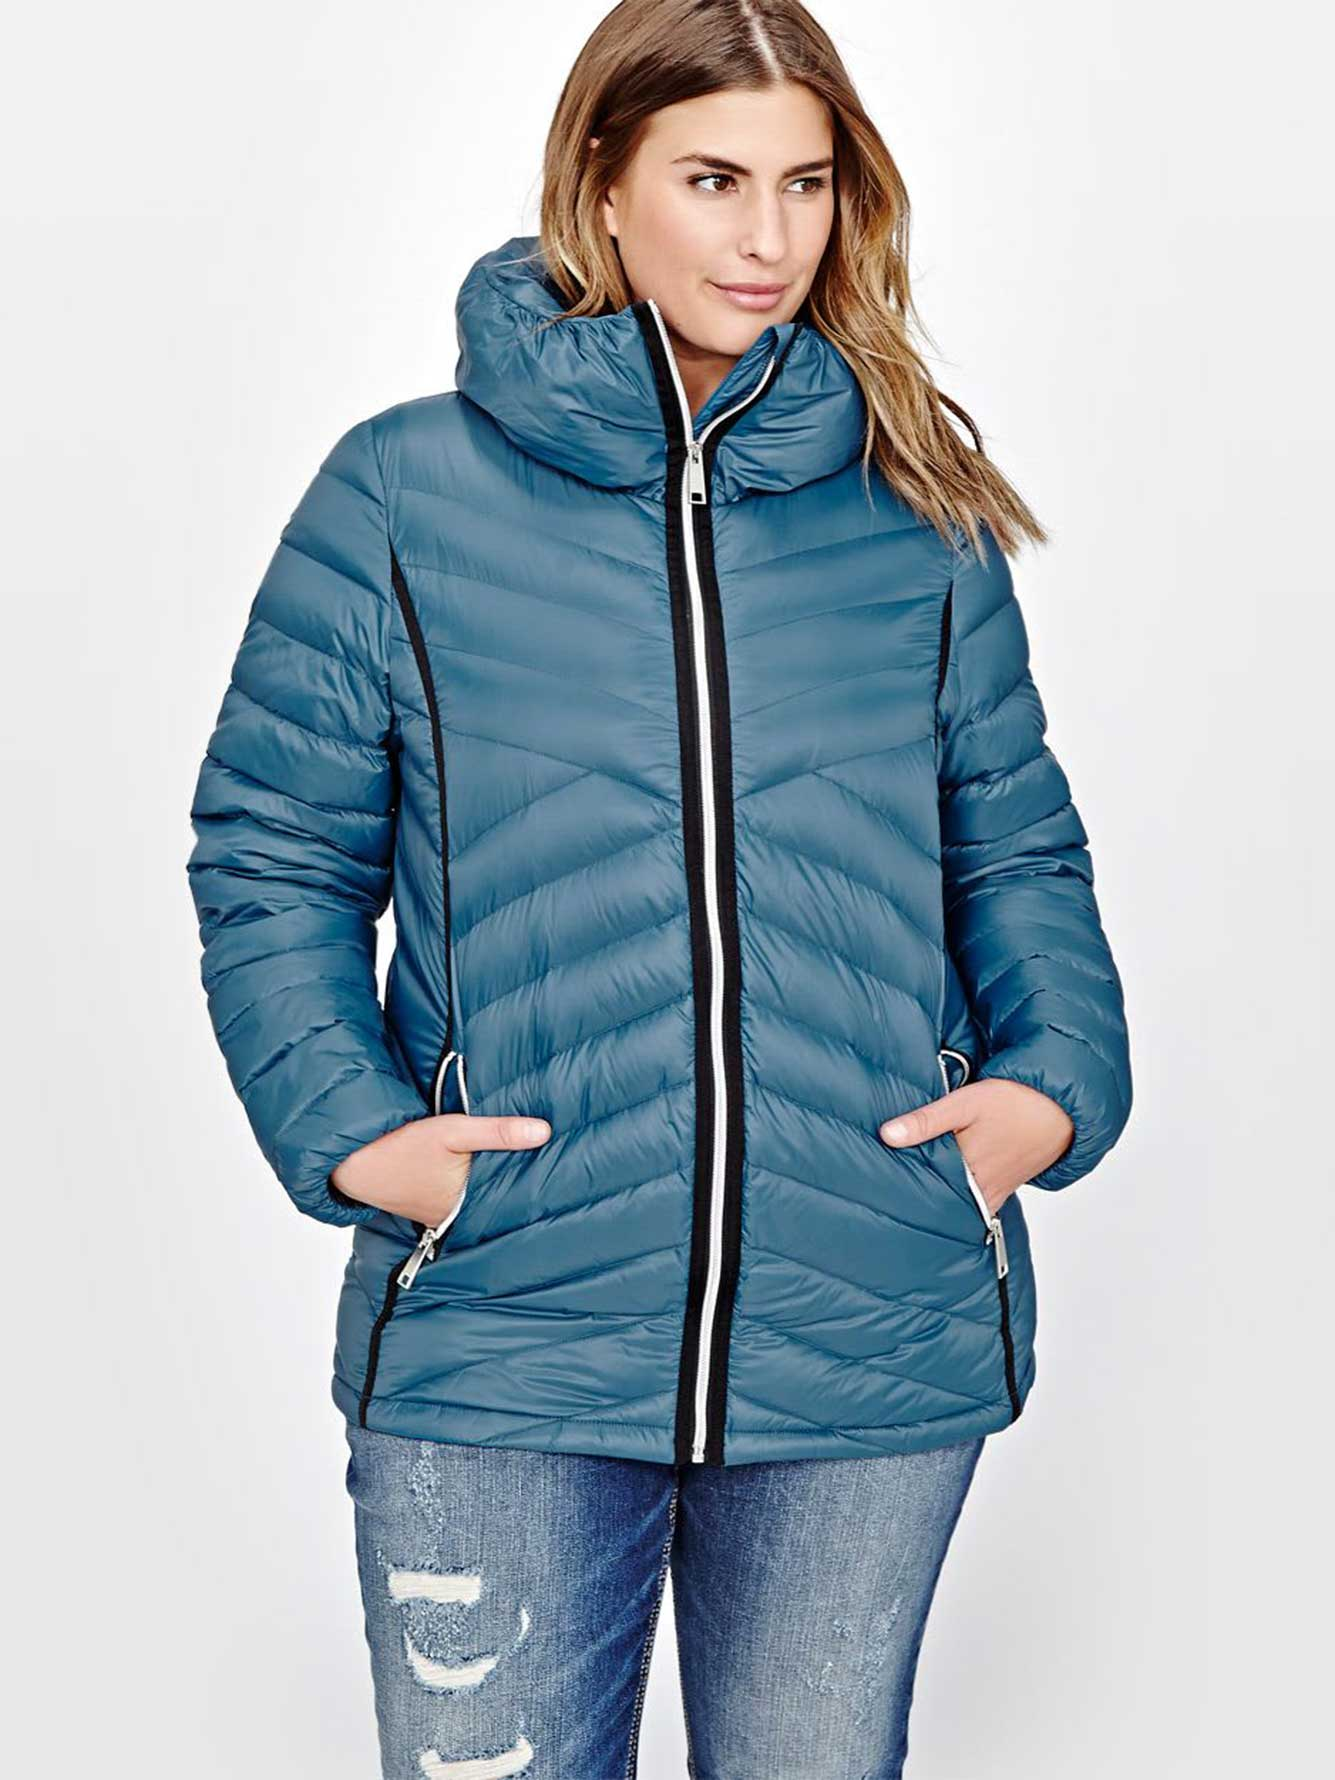 Livik Short Packable Quilted Jacket   Addition Elle : short quilted jacket with hood - Adamdwight.com